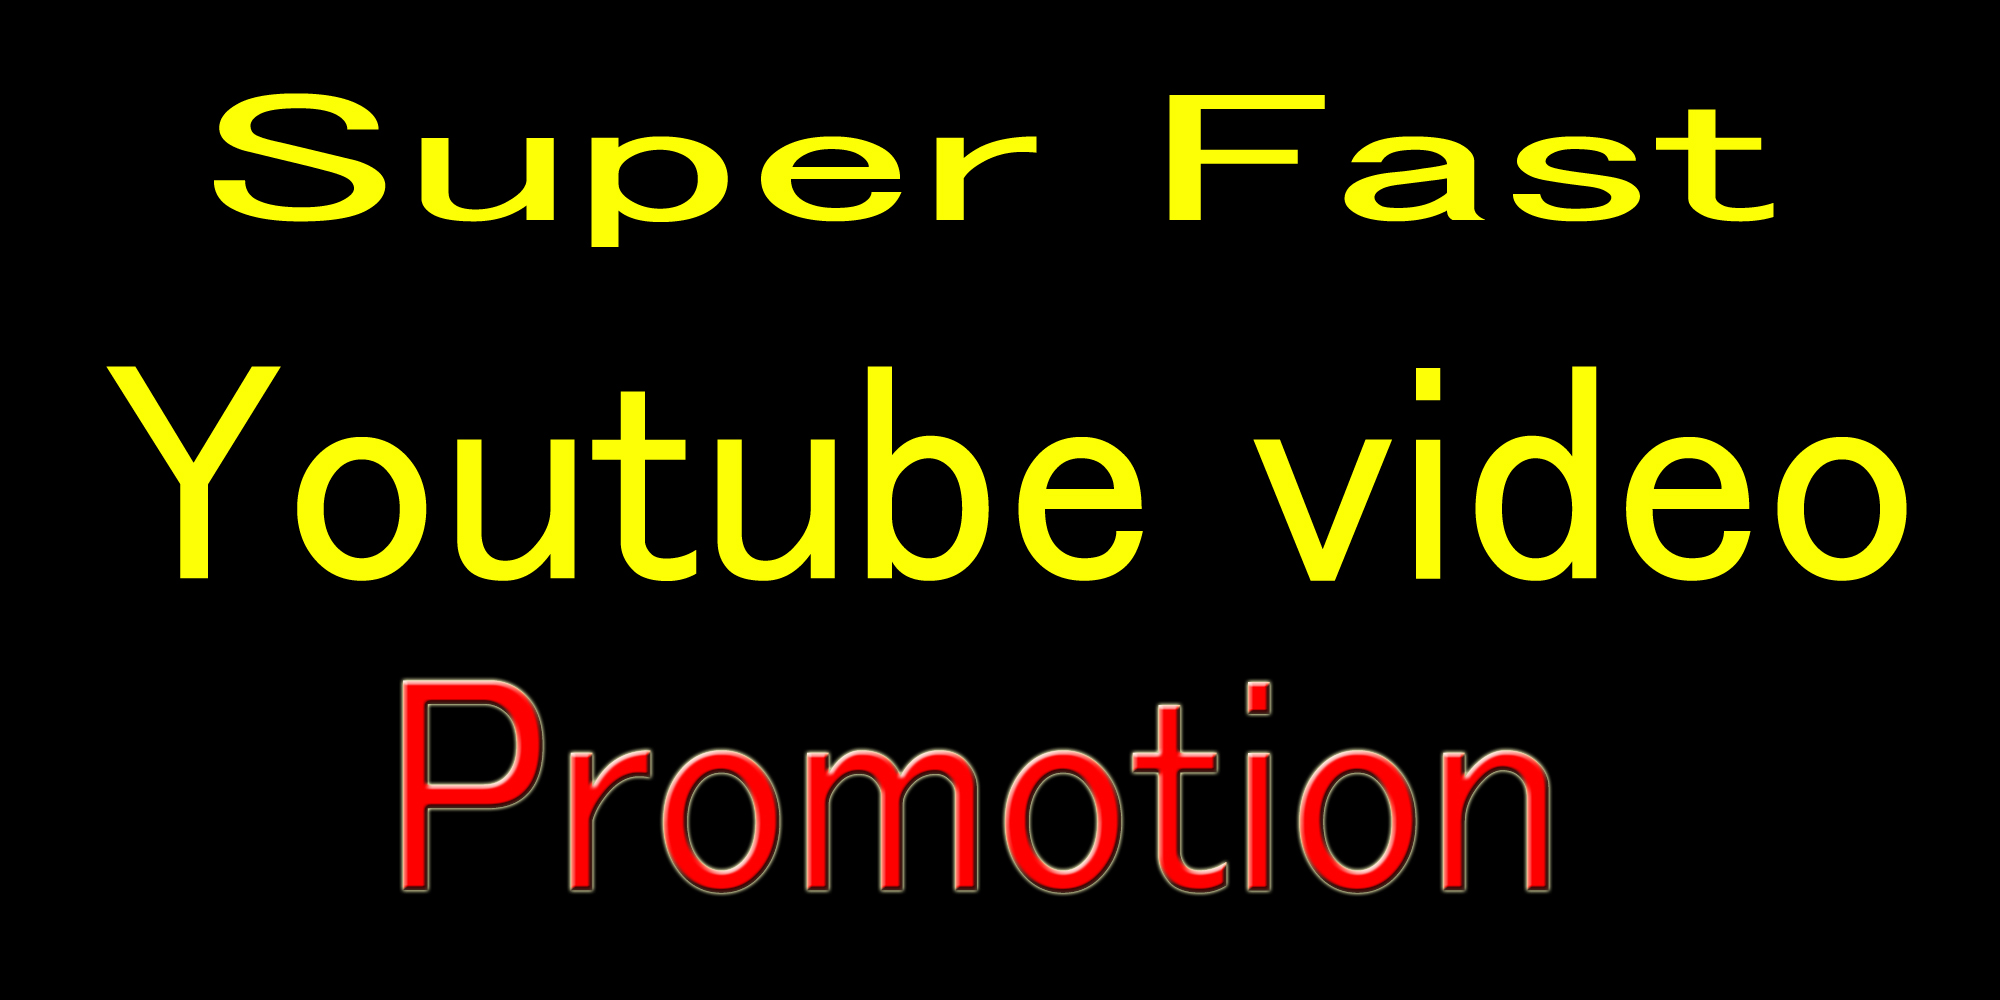 Youtube video promotion via social media google ranking marketing